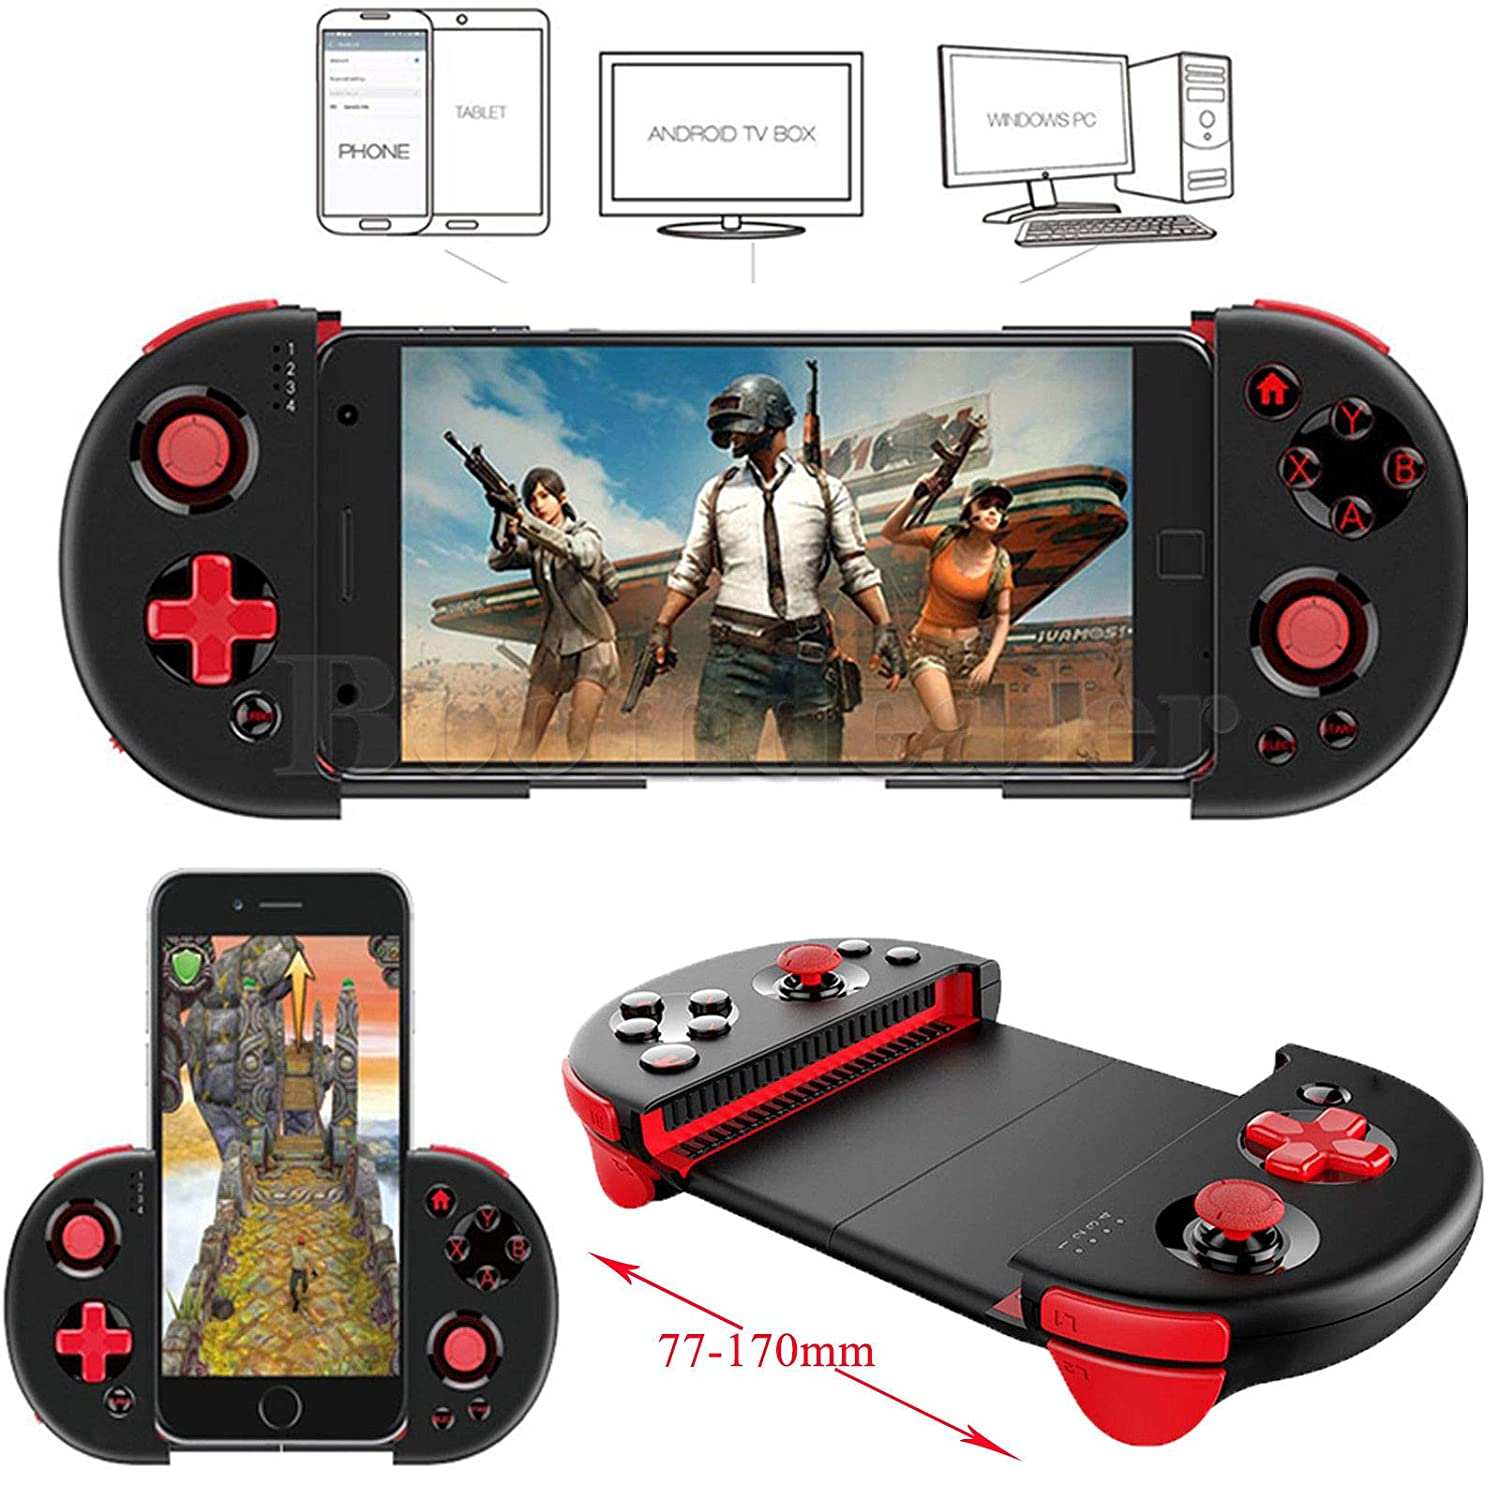 Buy Microware Ipega Pg 9087 Bluetooth Gamepad For Android Ios Stick Mobile Controller 9021 Smart Phone Extendable Game Tablet Pc Tv Box Online At Low